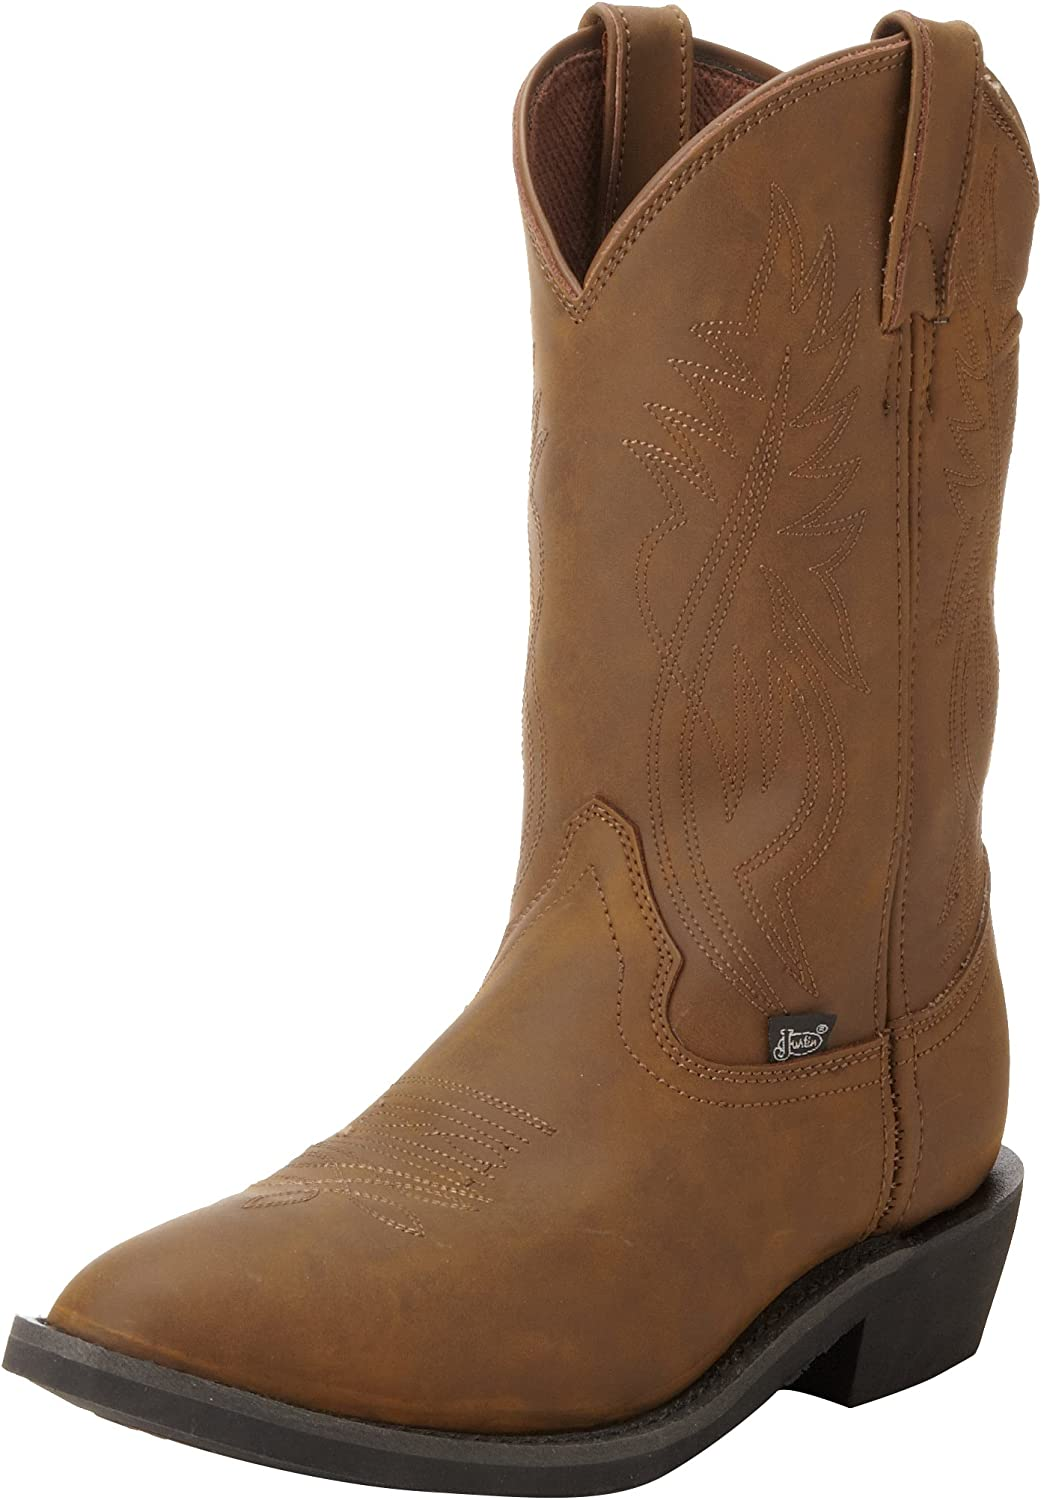 Justin Boots Animer and Mesa Mall price revision Men's Farm Ranch Boot